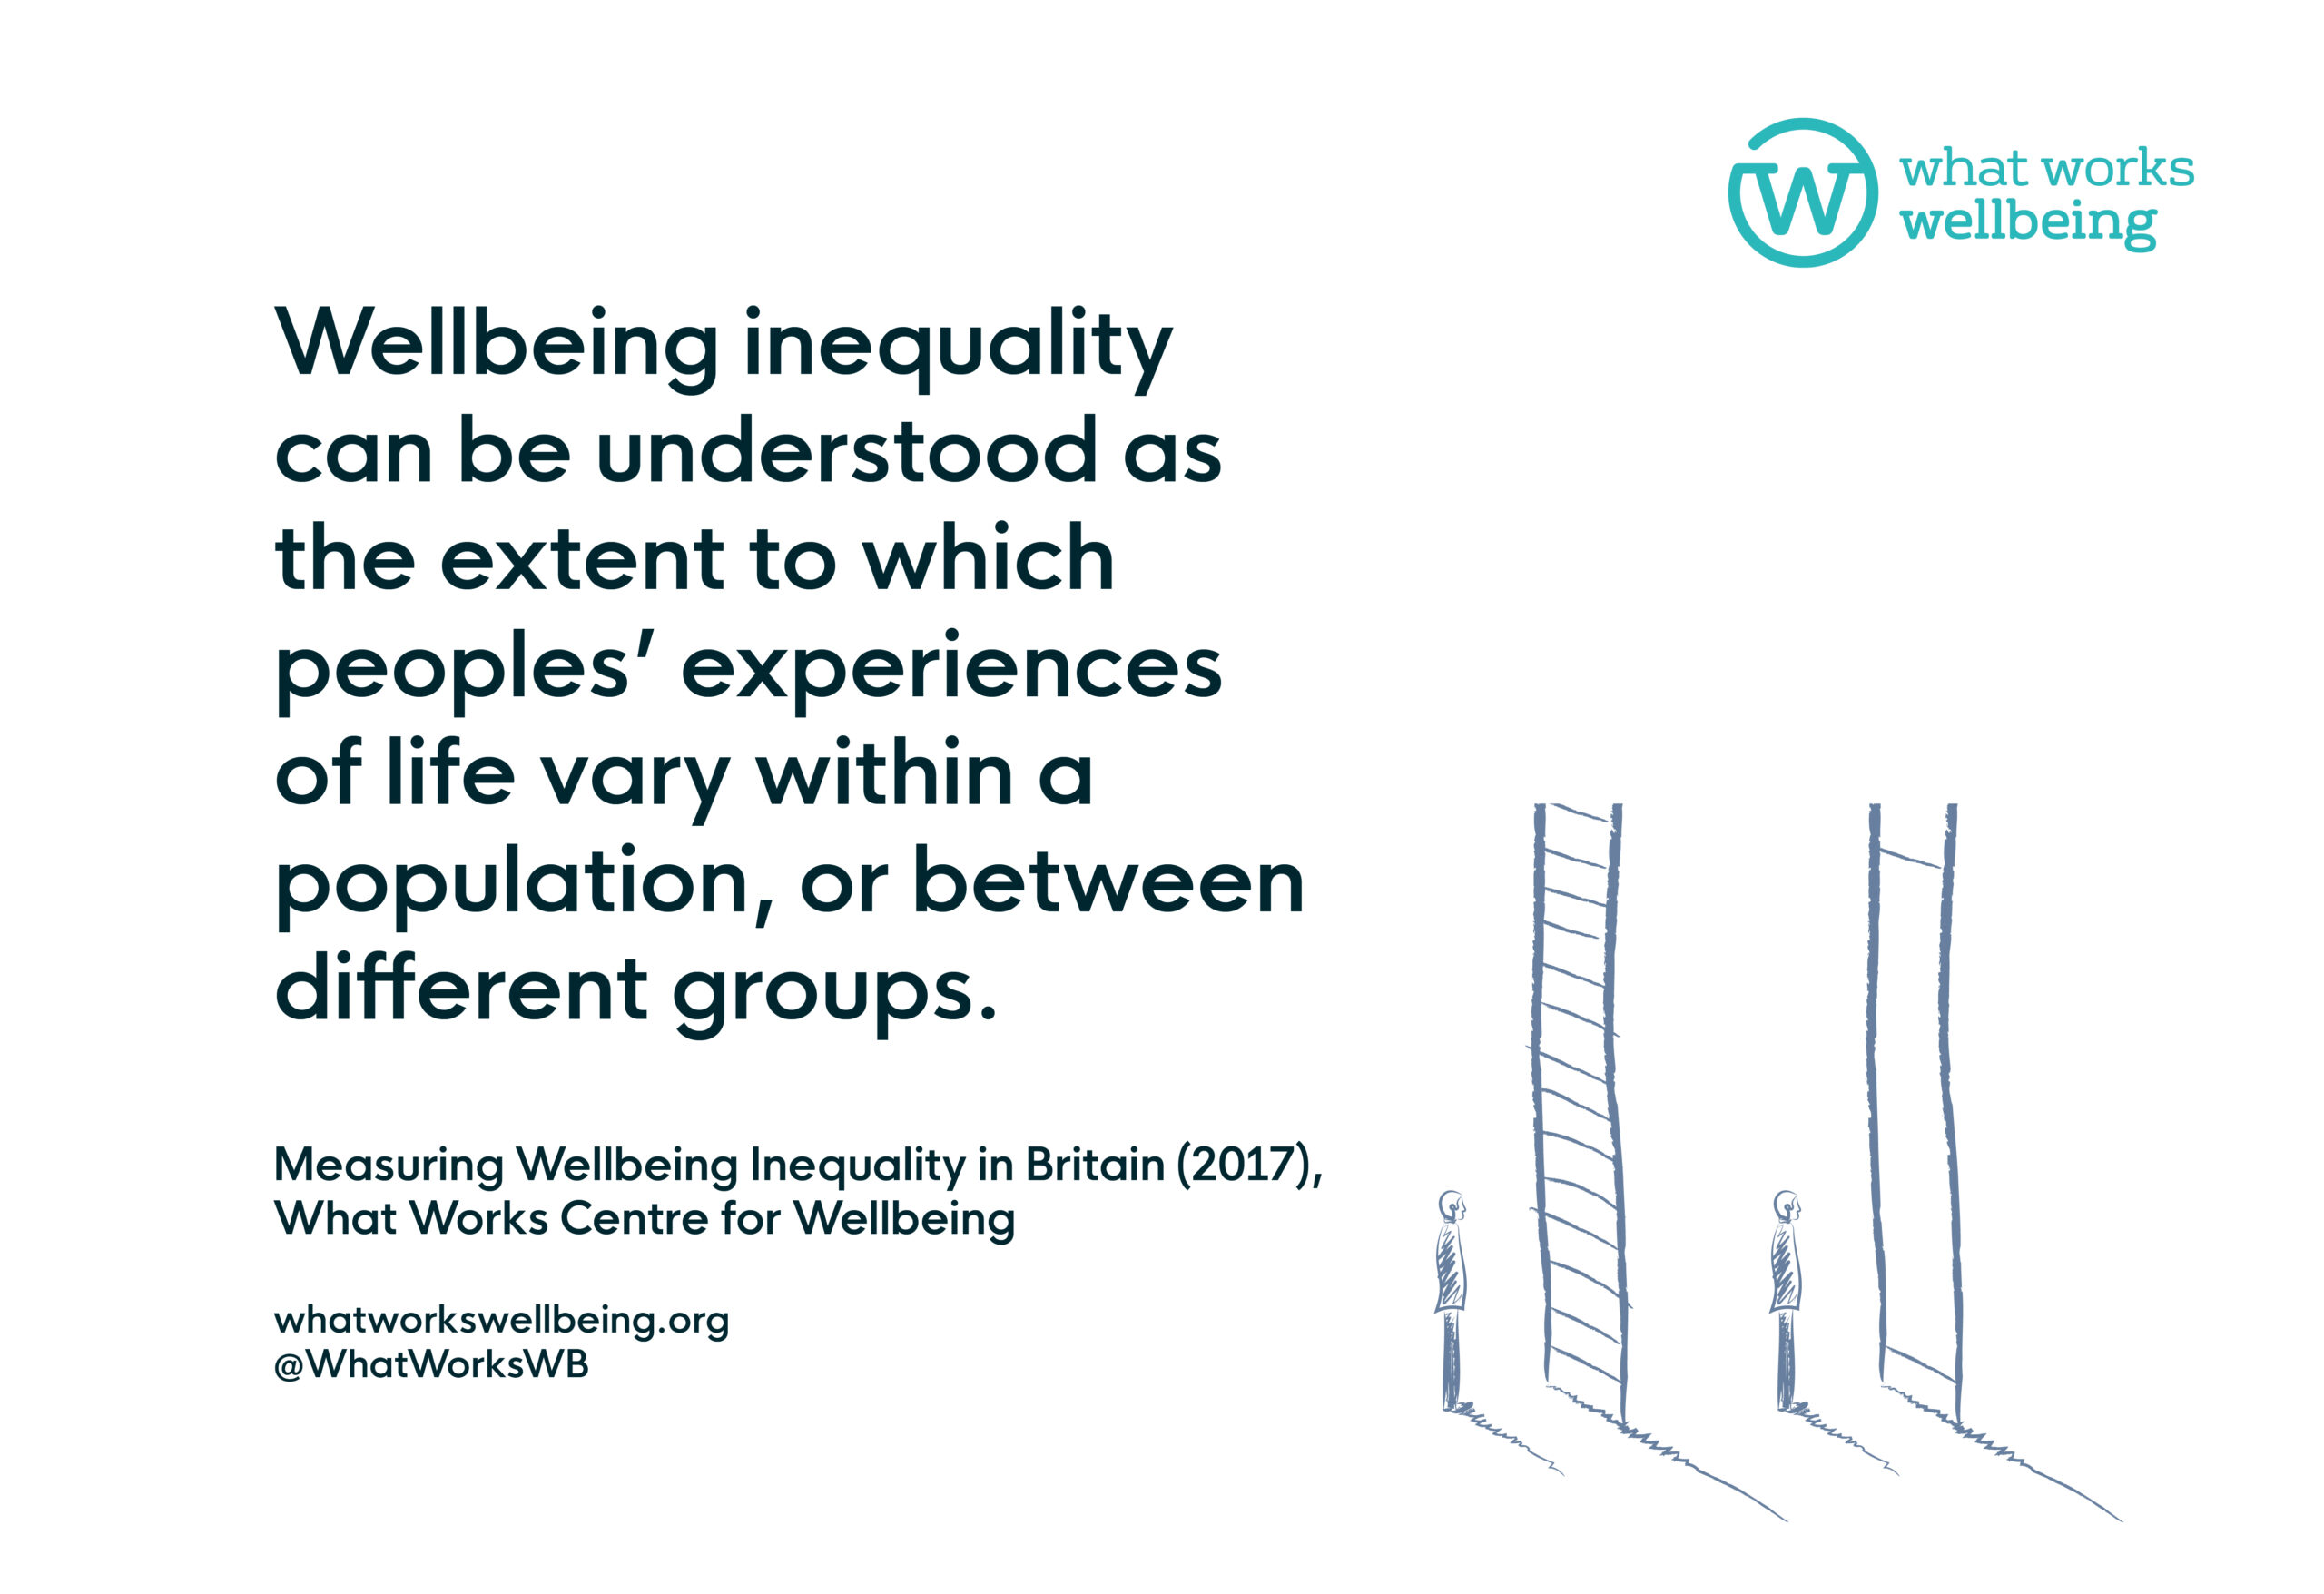 What is wellbeing inequality?